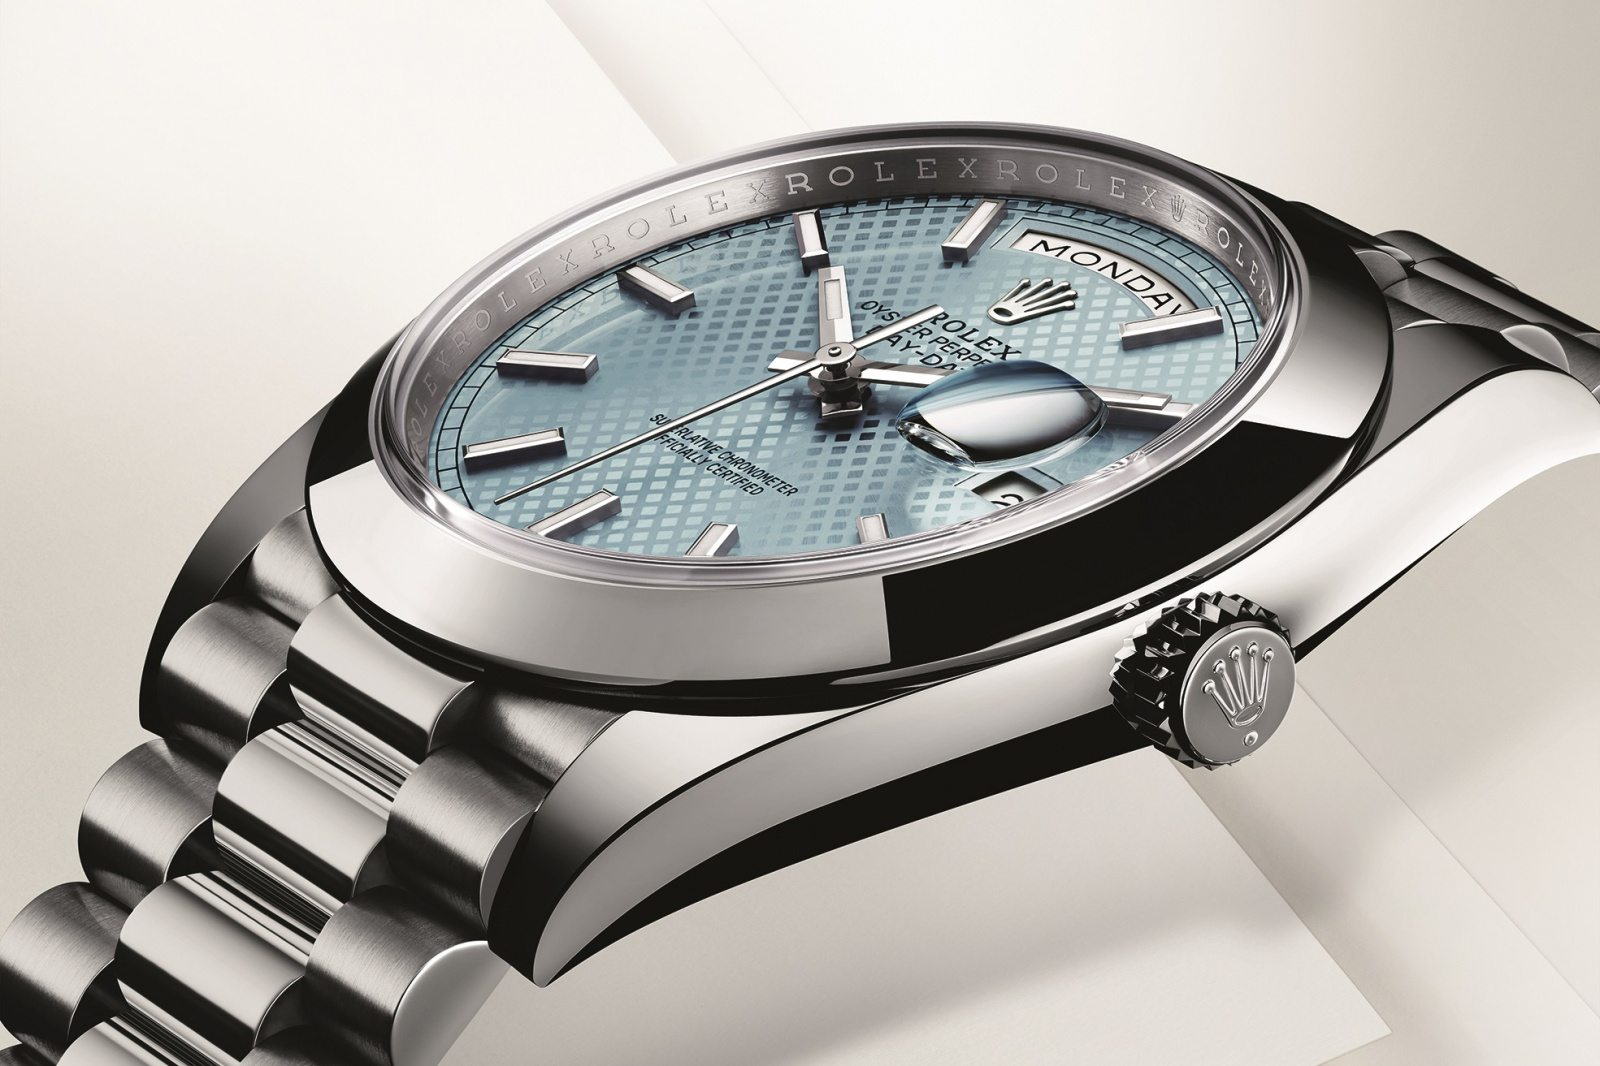 Rolex Oyster Perpetual Day-Date 40 Platinum